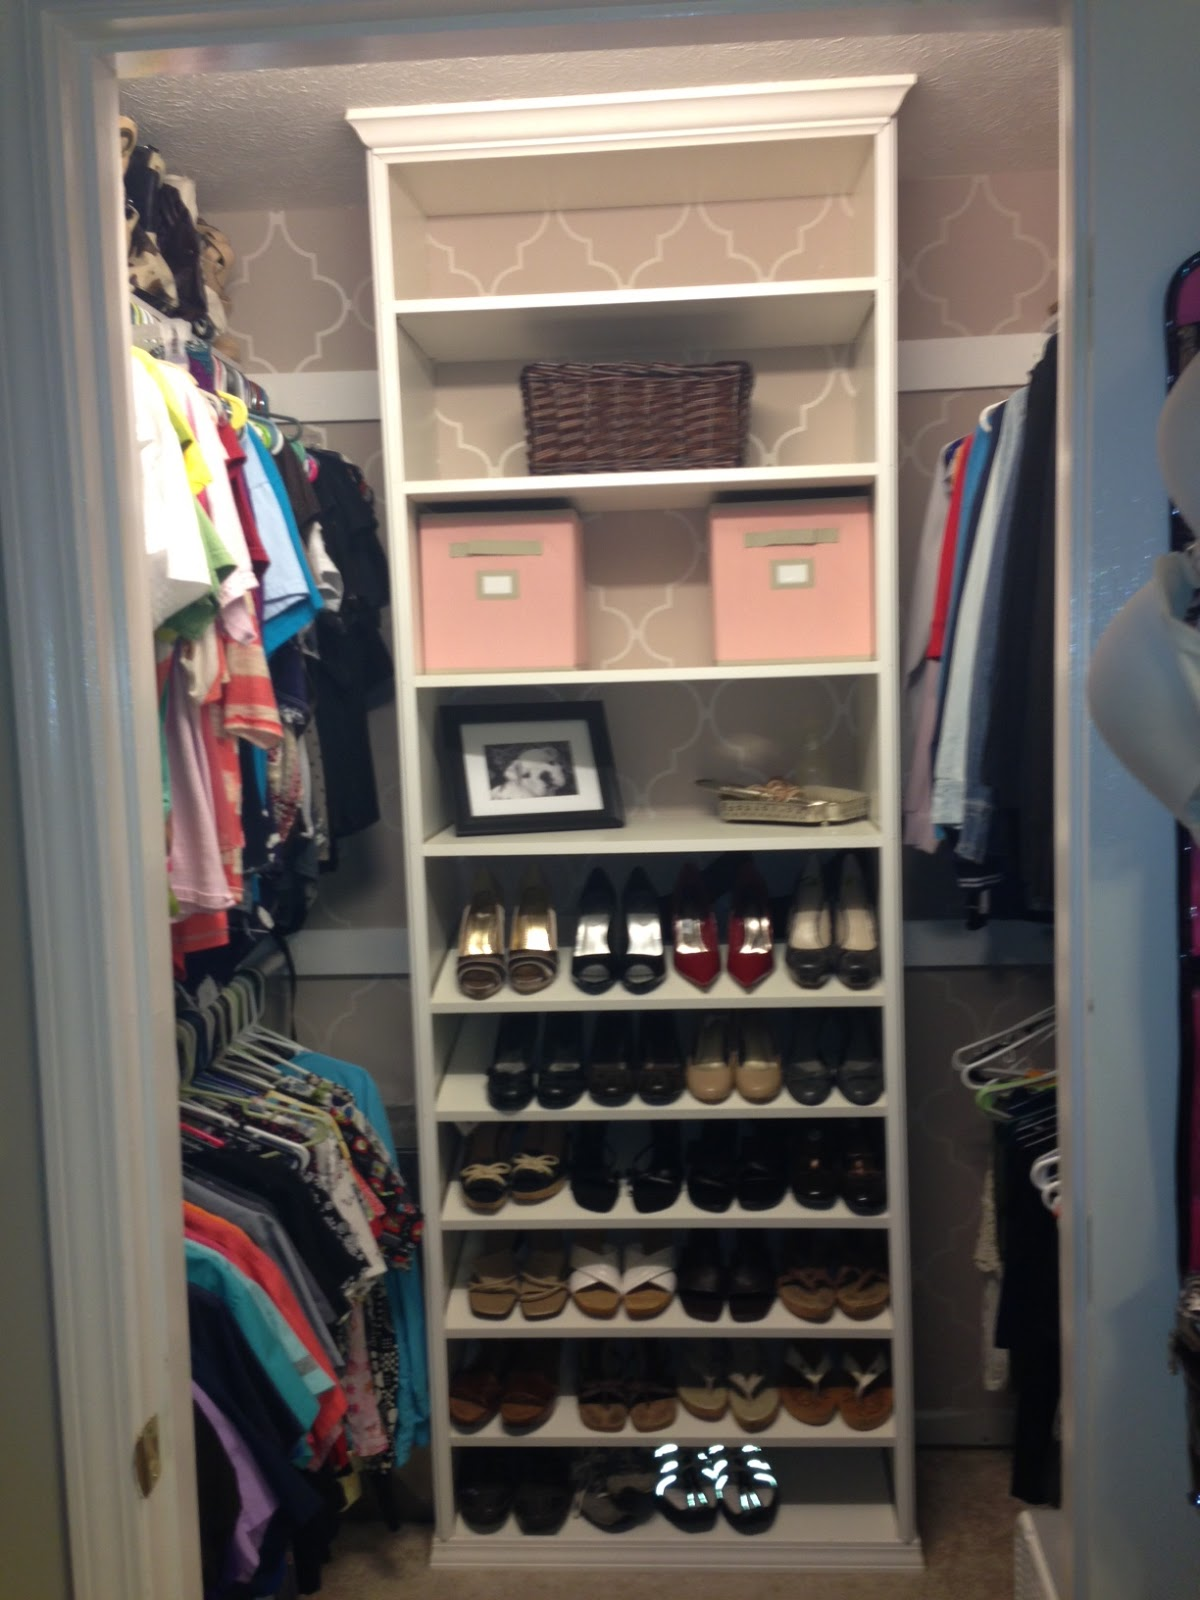 Diy custom closets diy closet organizer 5 diy custom closets o diy custom closets diy closet organizer 5 diy custom closets o solutioingenieria Image collections